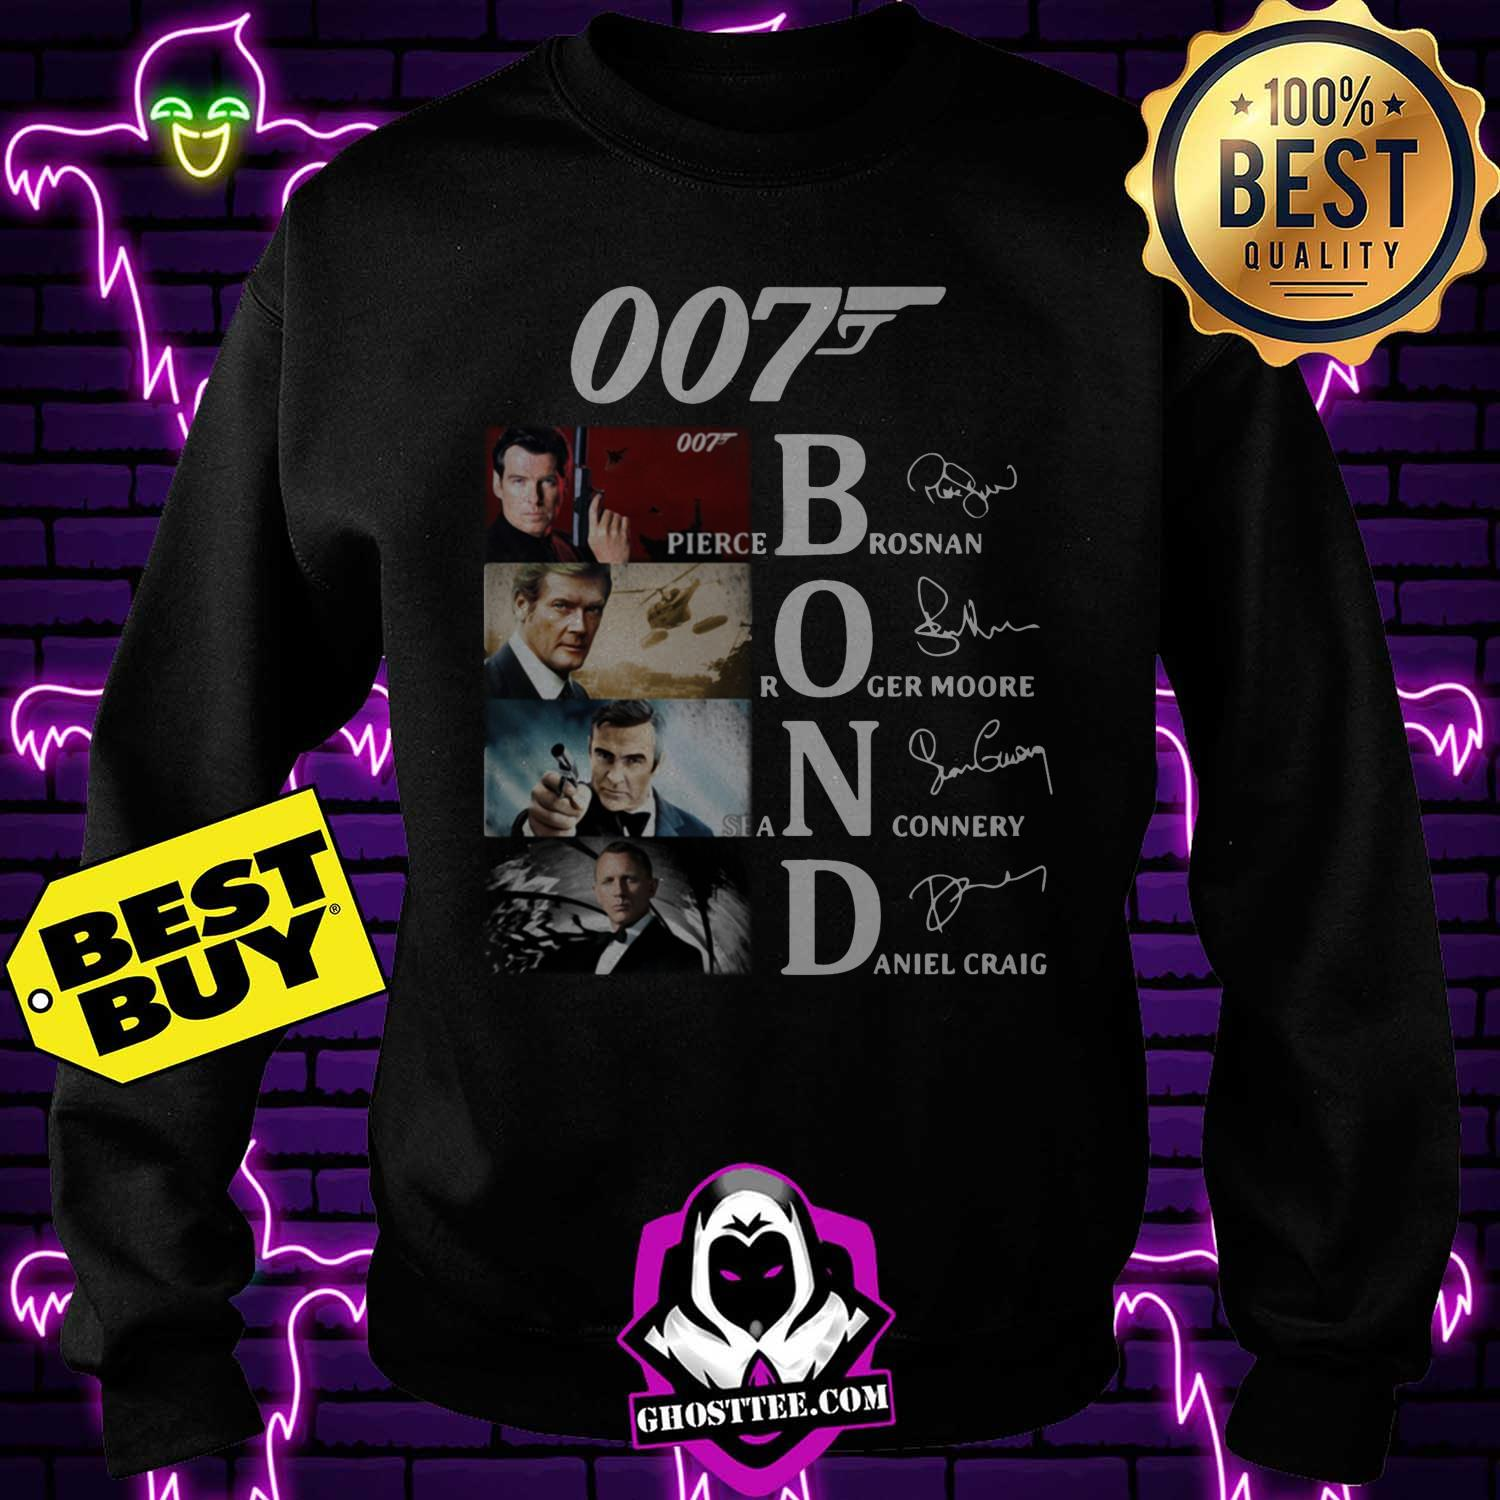 007 james bond signature sweatshirt - 007 James Bond signature shirt sweater